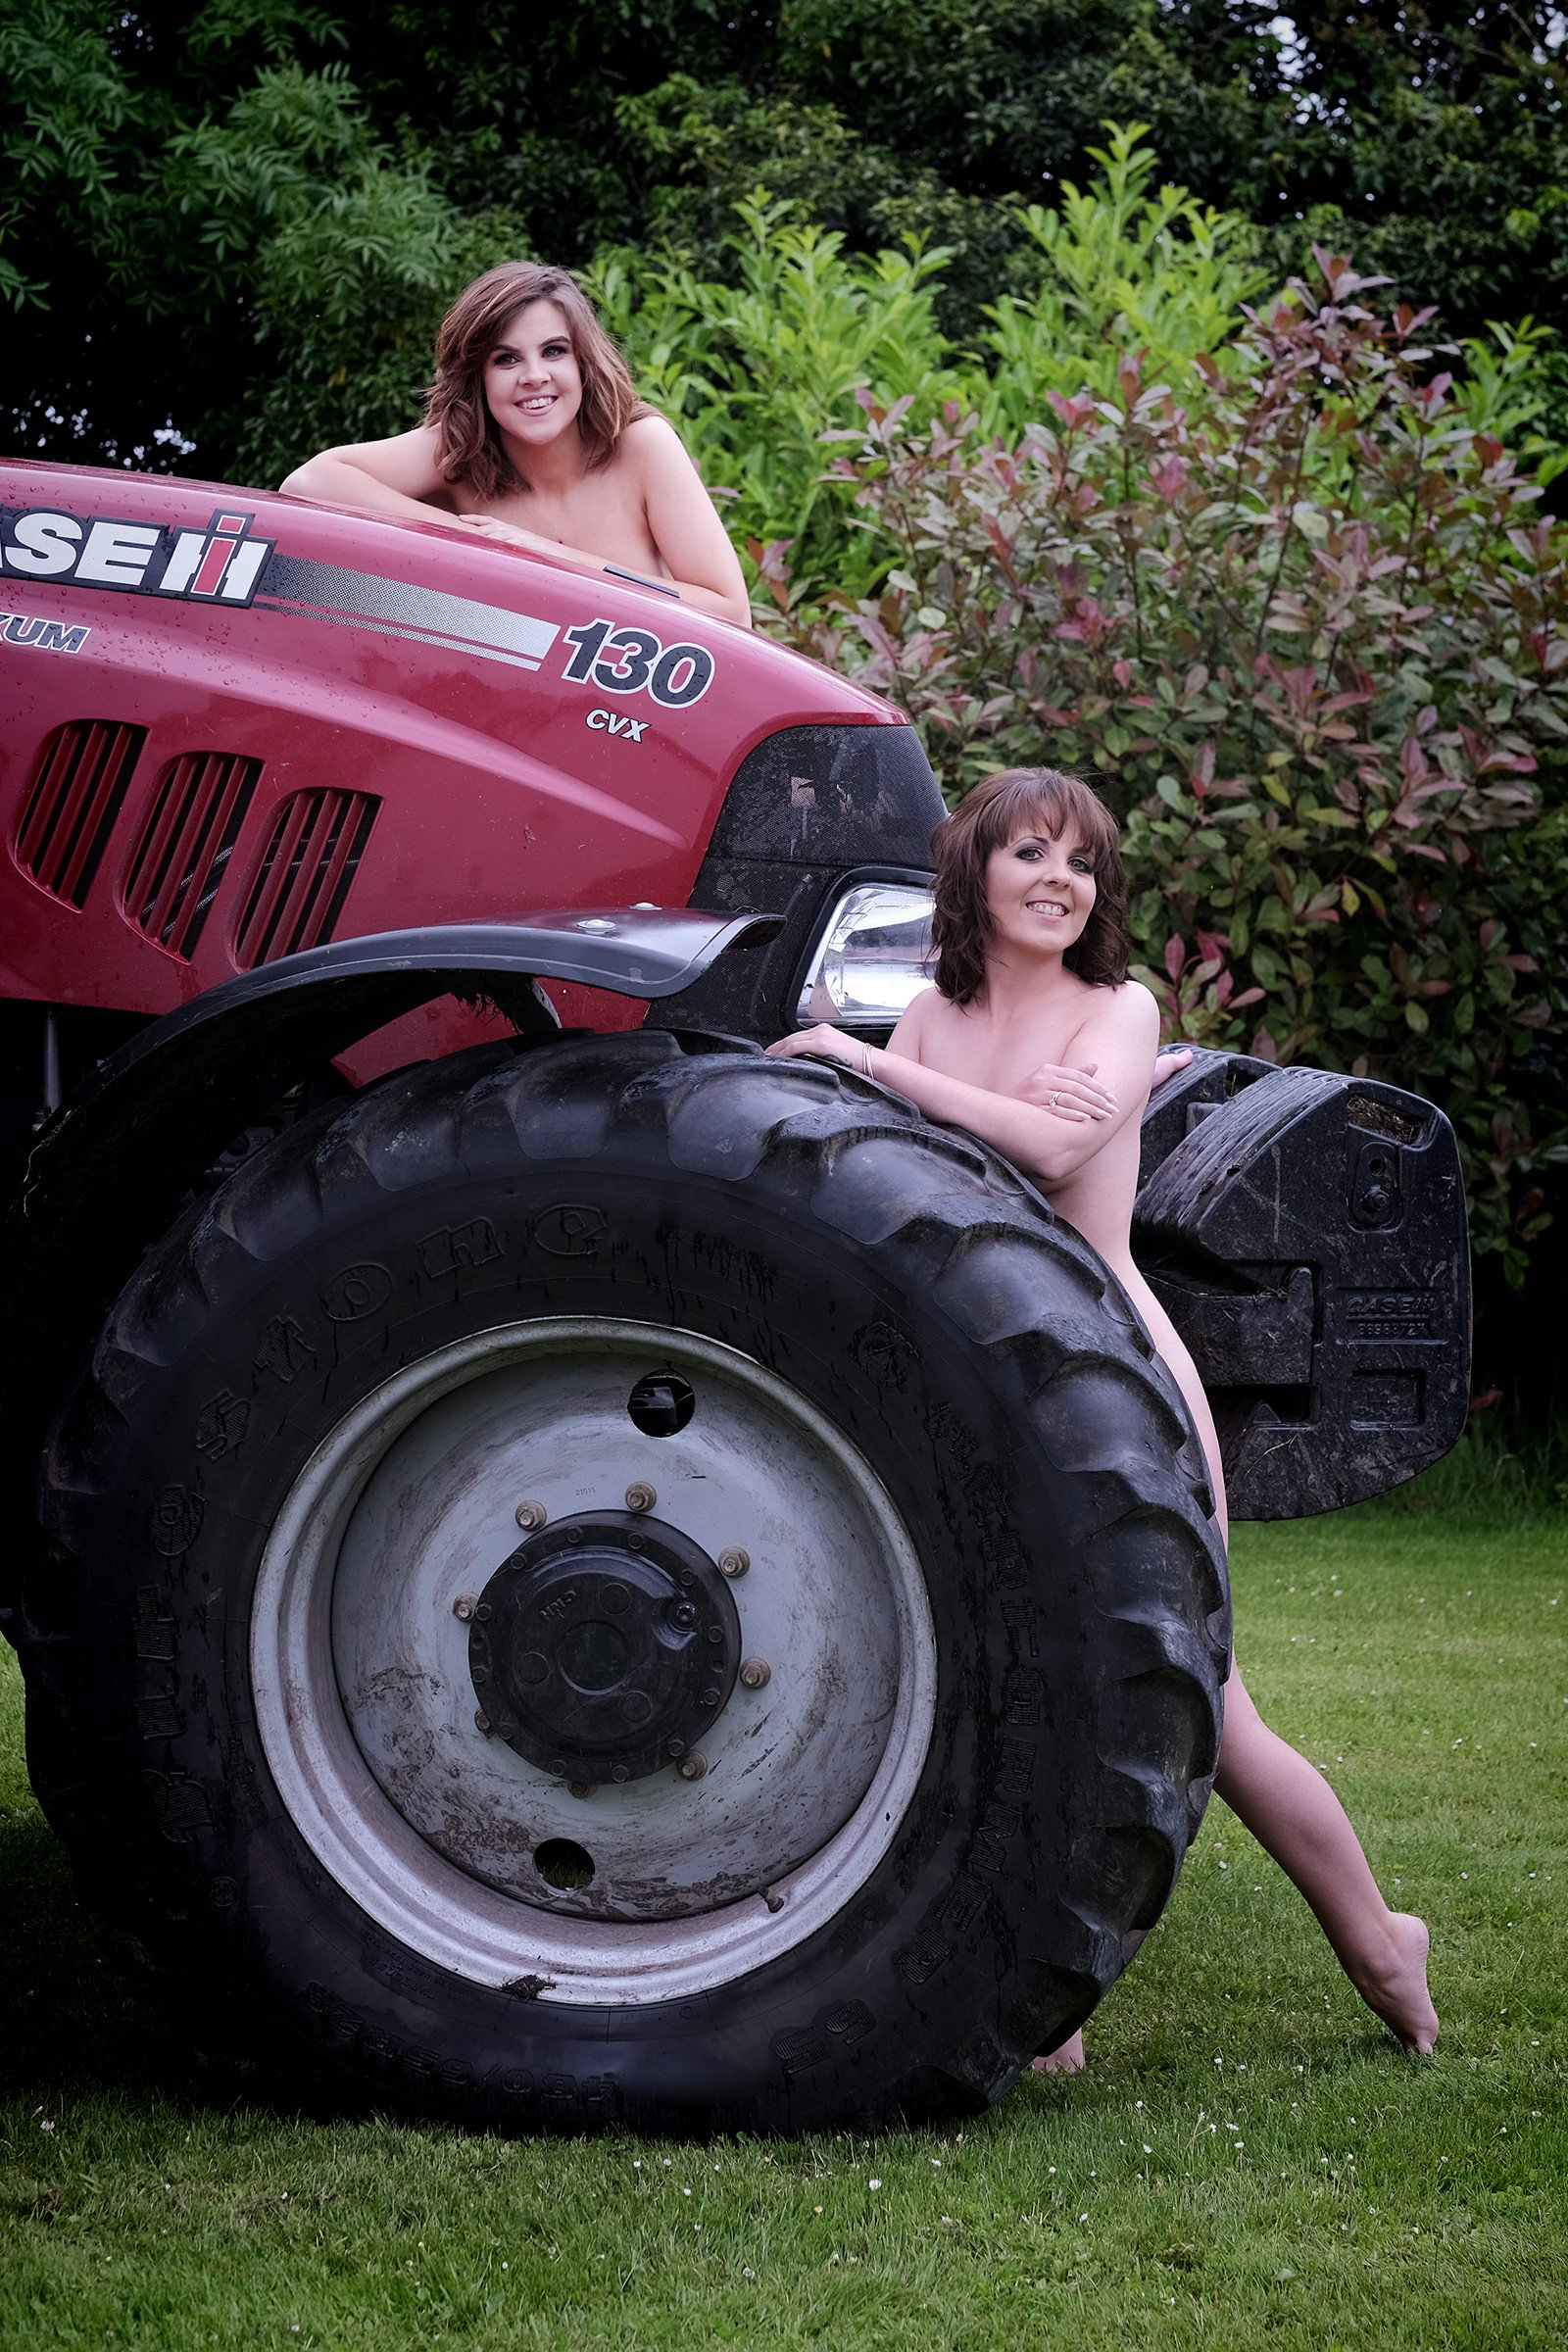 Man hot hot girls with tractors girlsquirting gif fill